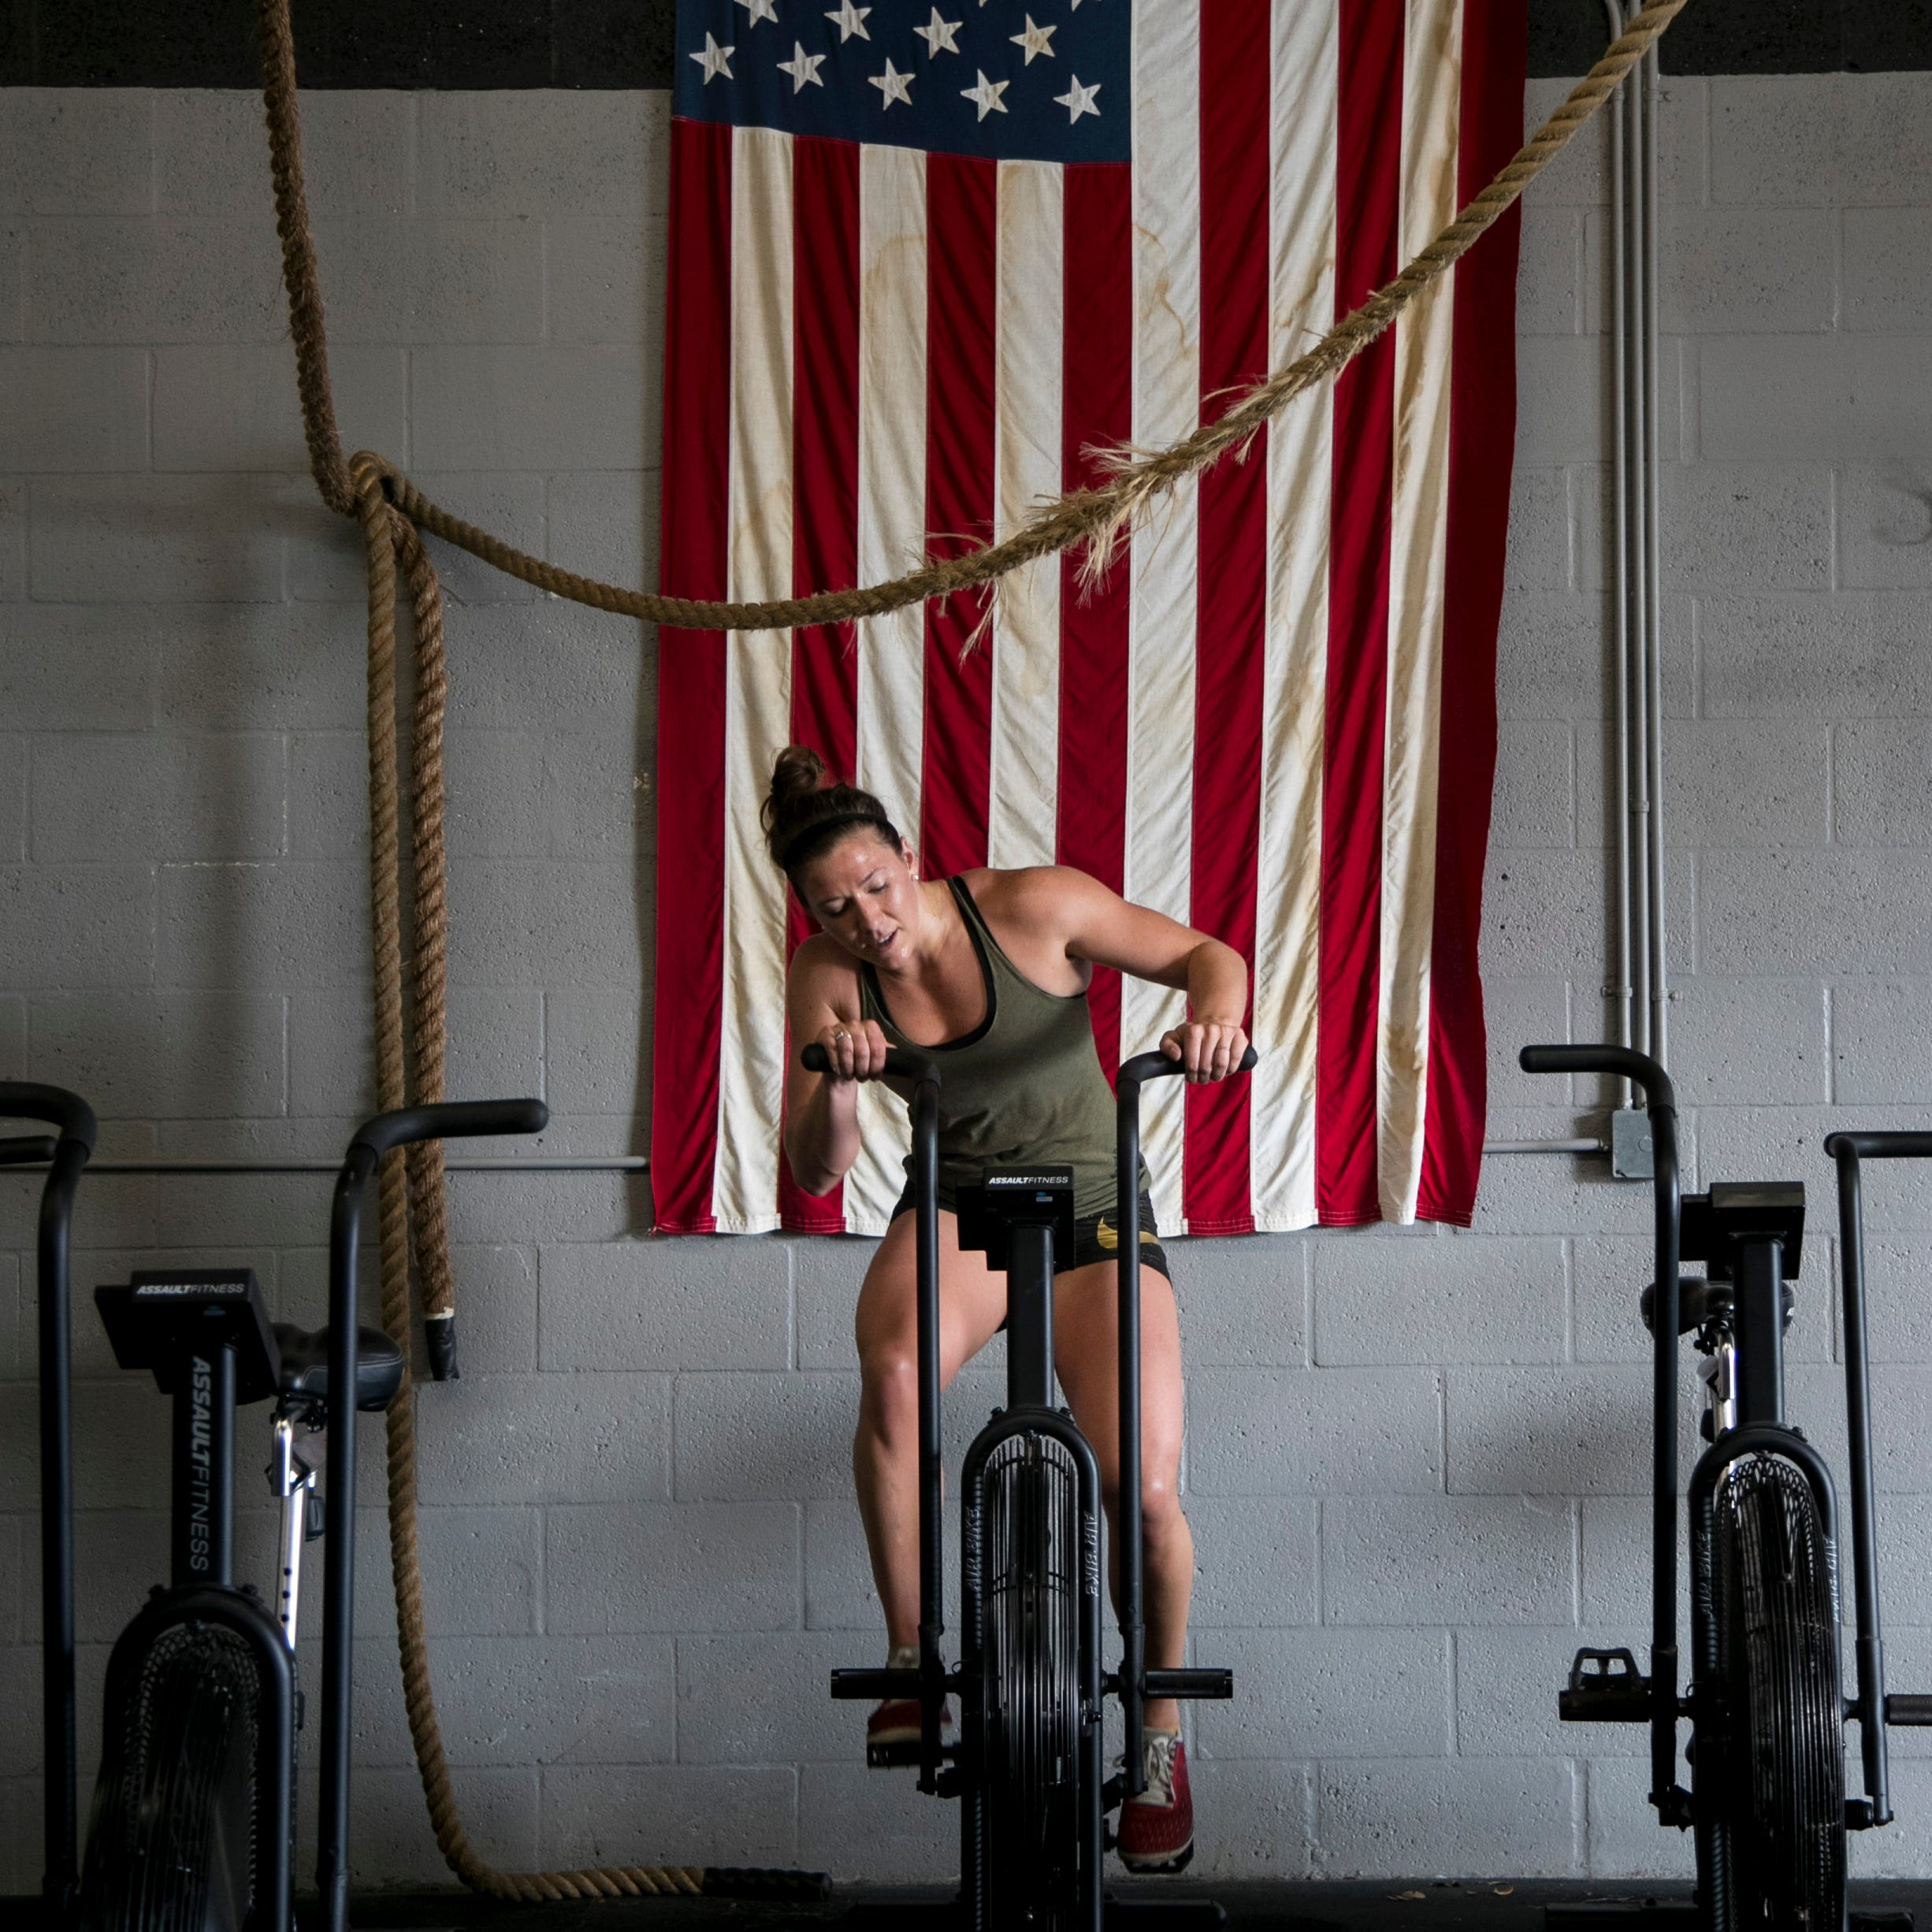 Alison Cowdin works out at CrossFit 239 on Wednesday, Feb. 20, 2019, in Fort Myers. The gym is one of many across the world preparing for the 2019 CrossFit Open.